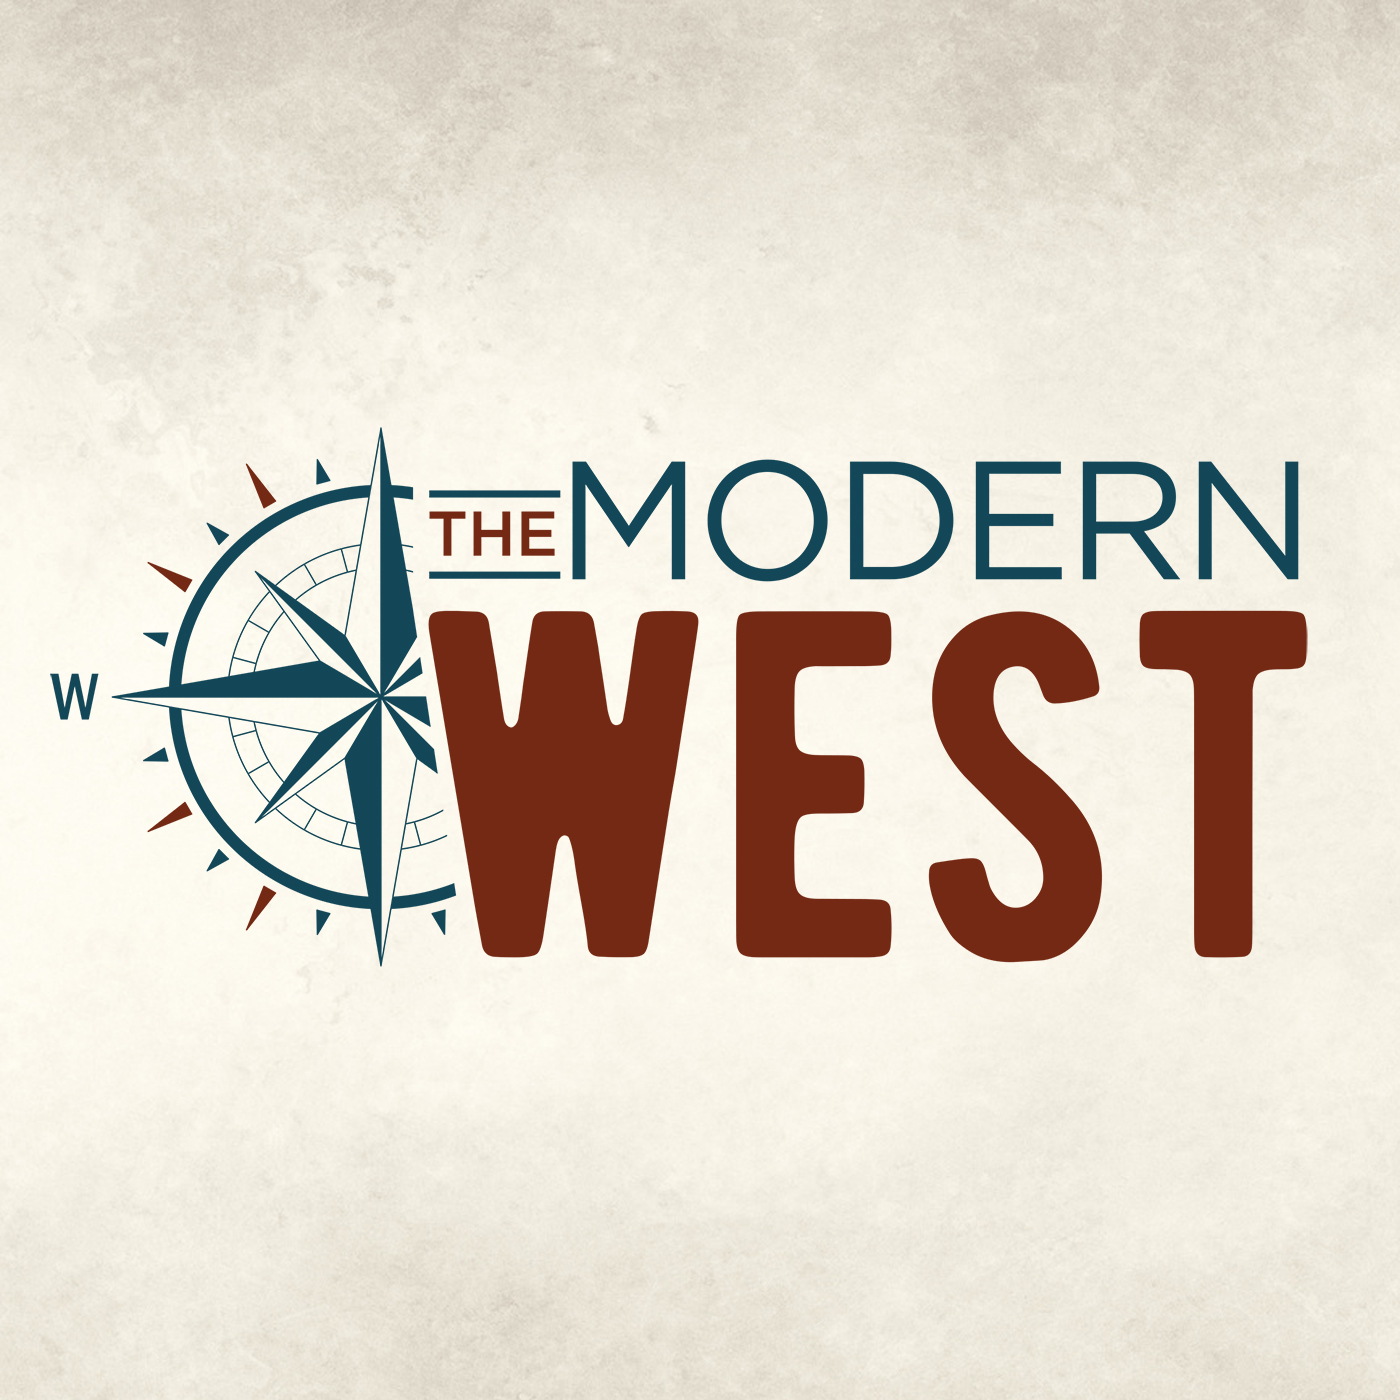 The Modern West album art